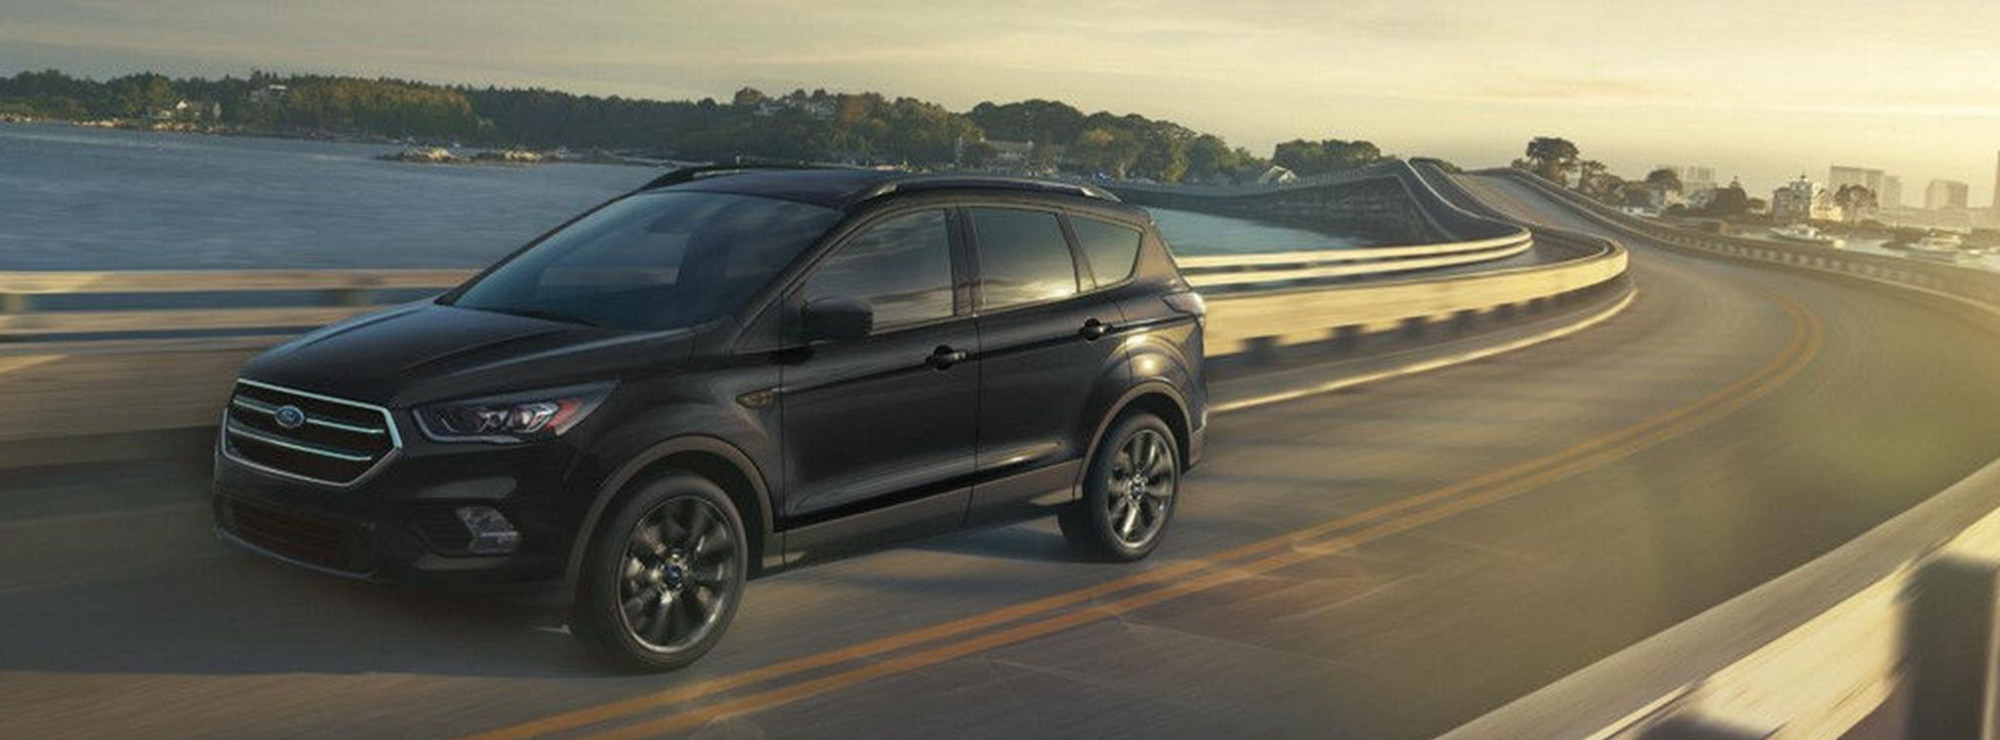 2018 ford escape in lewes